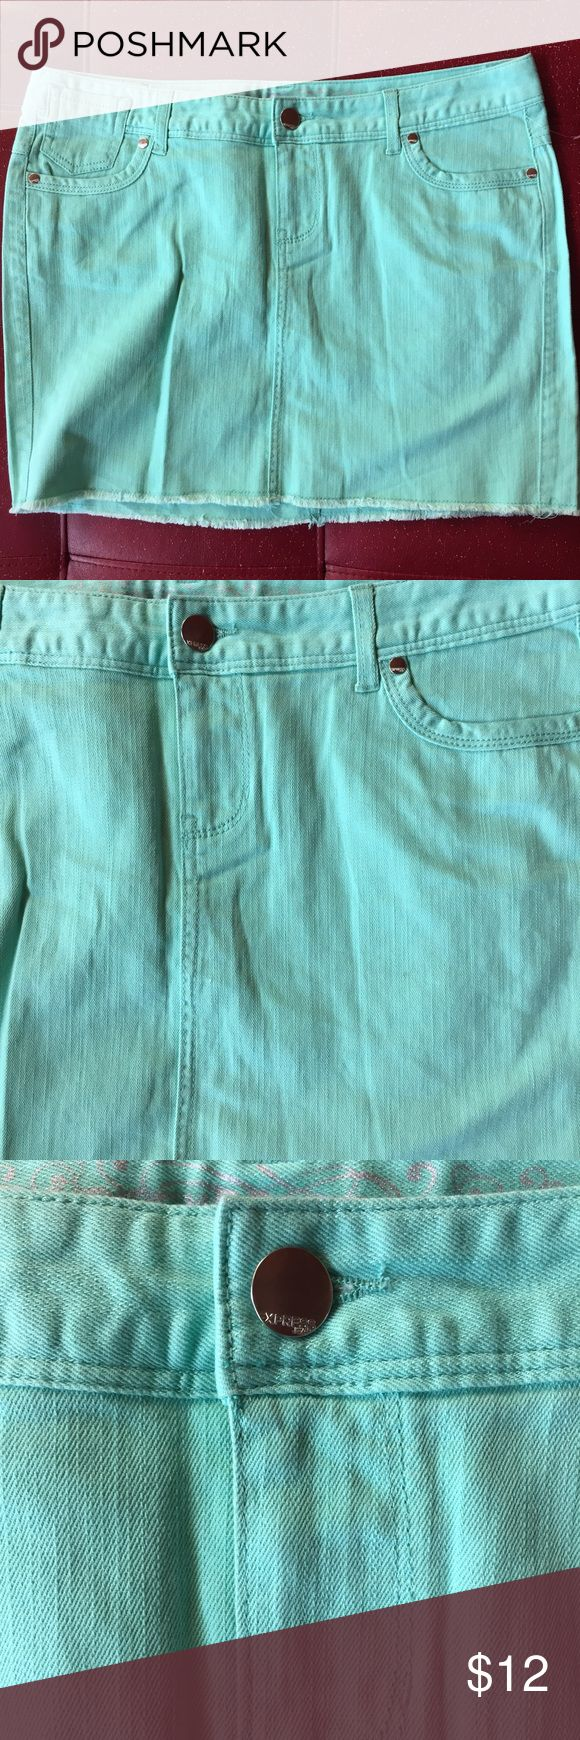 Teal Jean mini Skirt Super cute and colorful teal mini denim skirt. Great condition. Express Skirts Mini